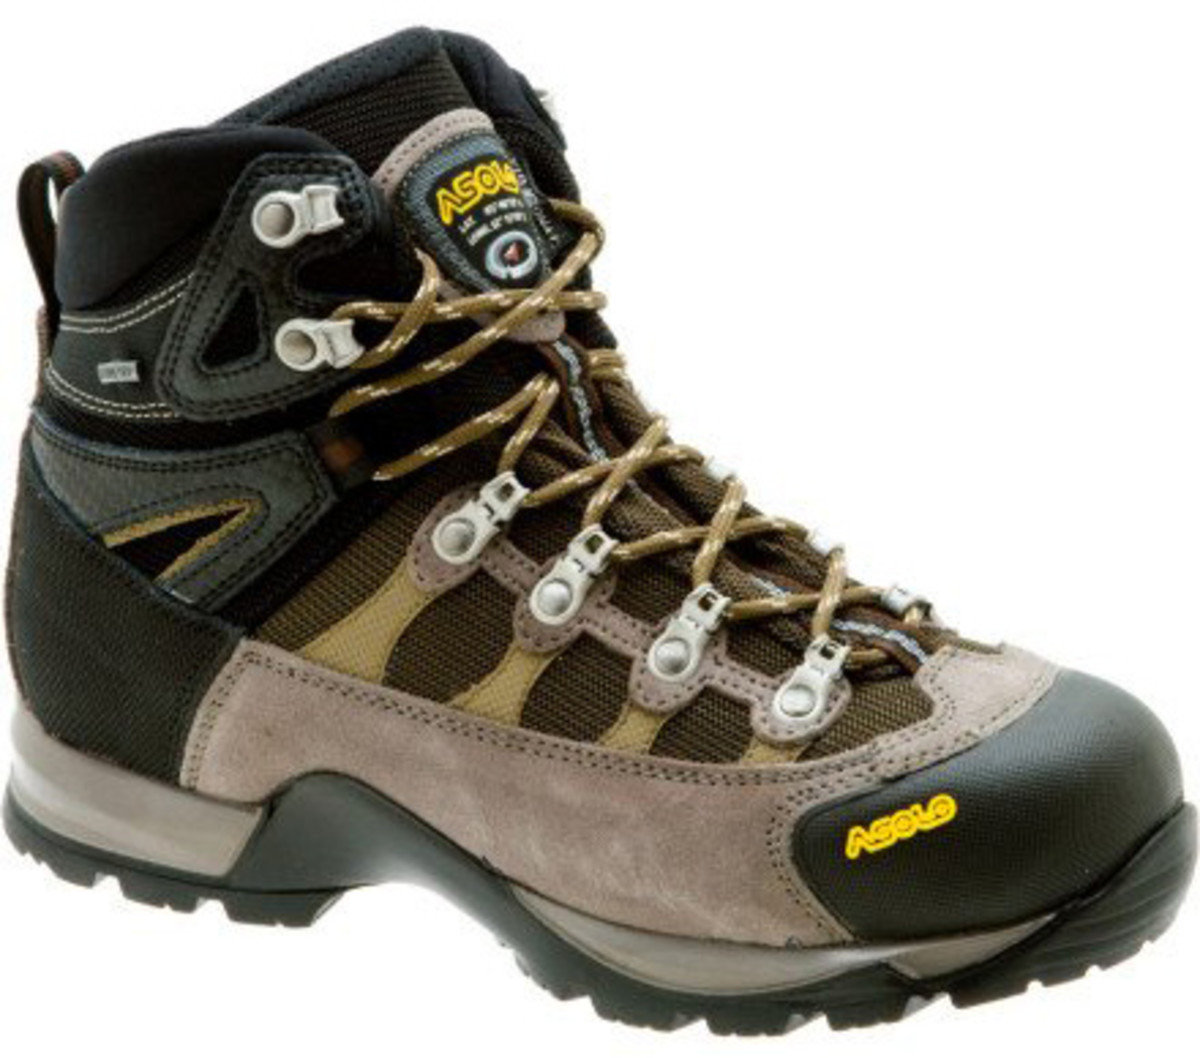 Best women's hiking boots 2016